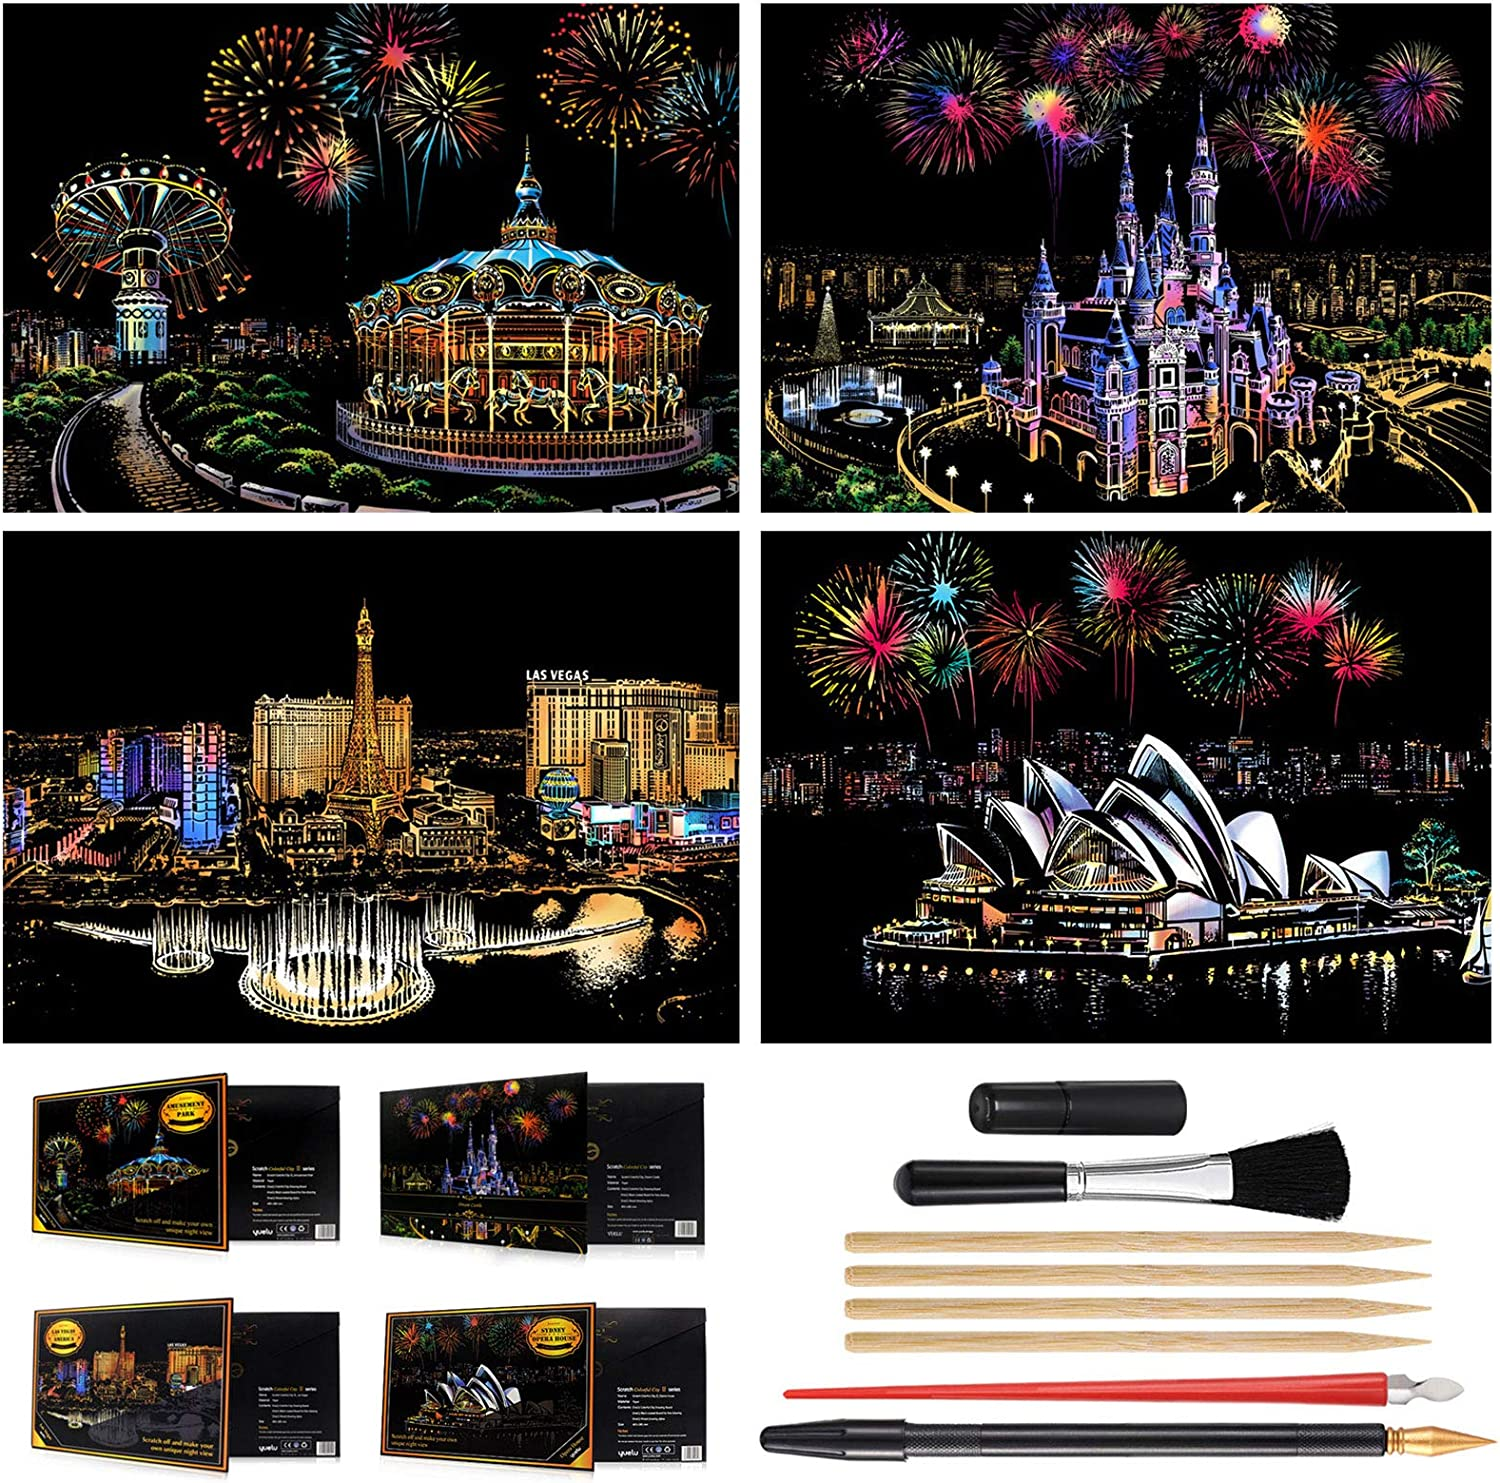 Sketch Night View Scratchboard for Teens /& Adults Magic Scratch Art Rainbow Painting Paper Amusement Park - Castle - Las Vegas - Sydney 16 x 11.2 Engraving /& Craft Set 4 Pack with 8 Tools